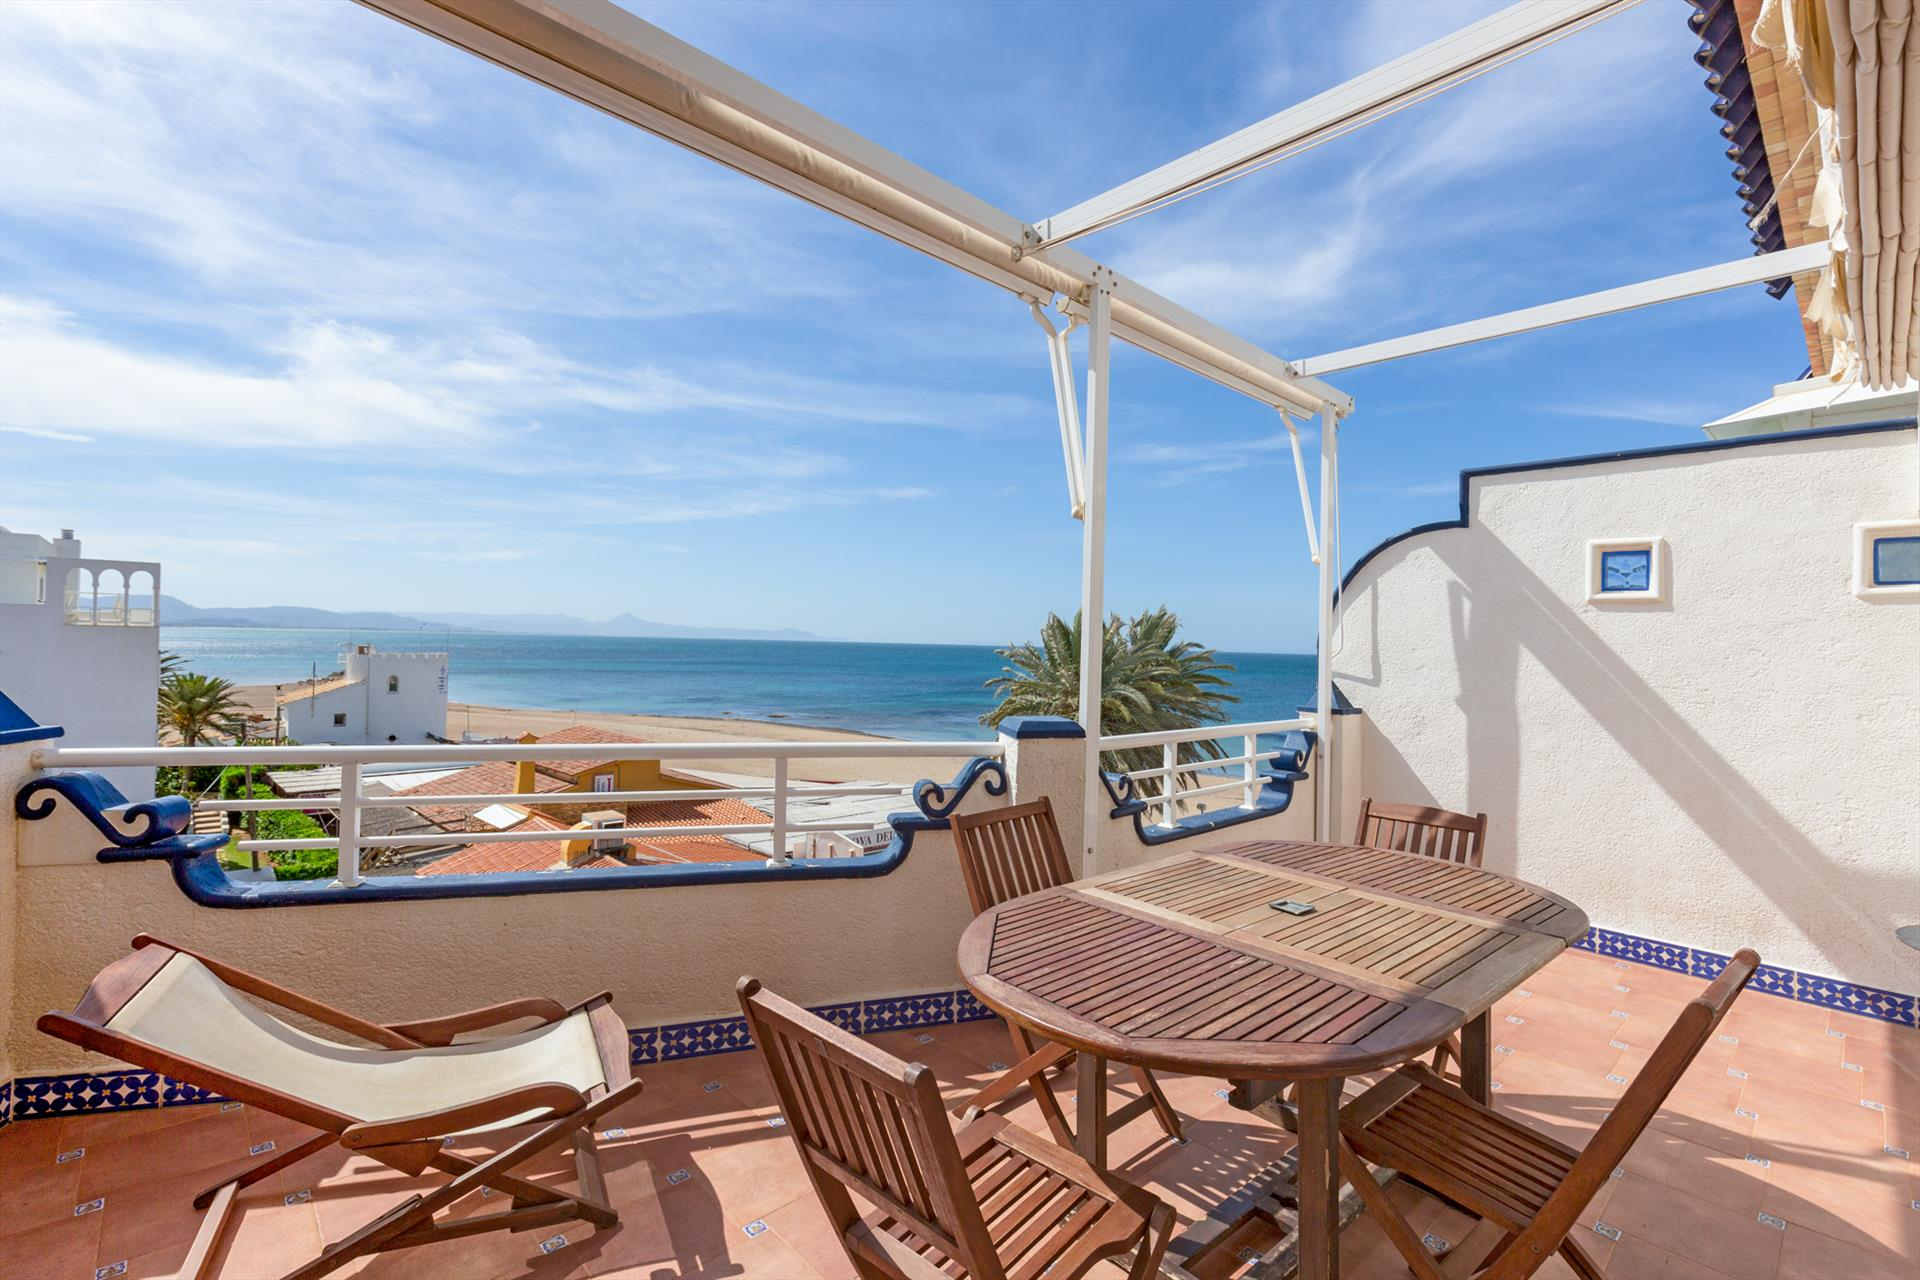 Atico Mar Roja Medina Molins AT2201, Wonderful and cheerful holiday house  with communal pool in Denia, on the Costa Blanca, Spain for 6 persons.....